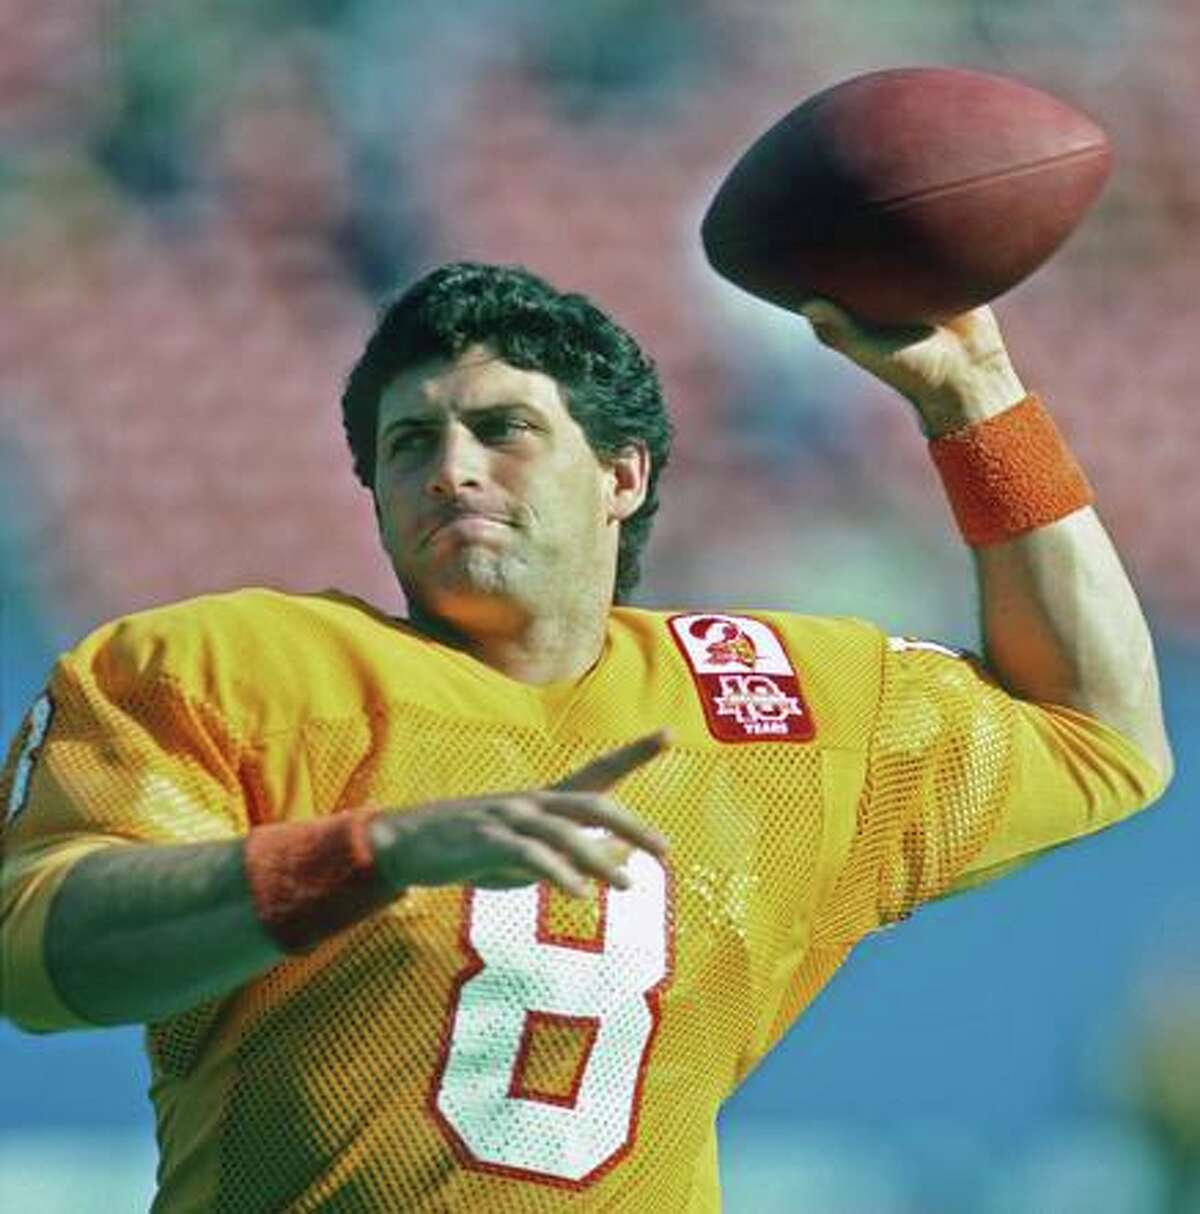 Steve Young says he almost died during a snowstorm in Green Bay in 1985.